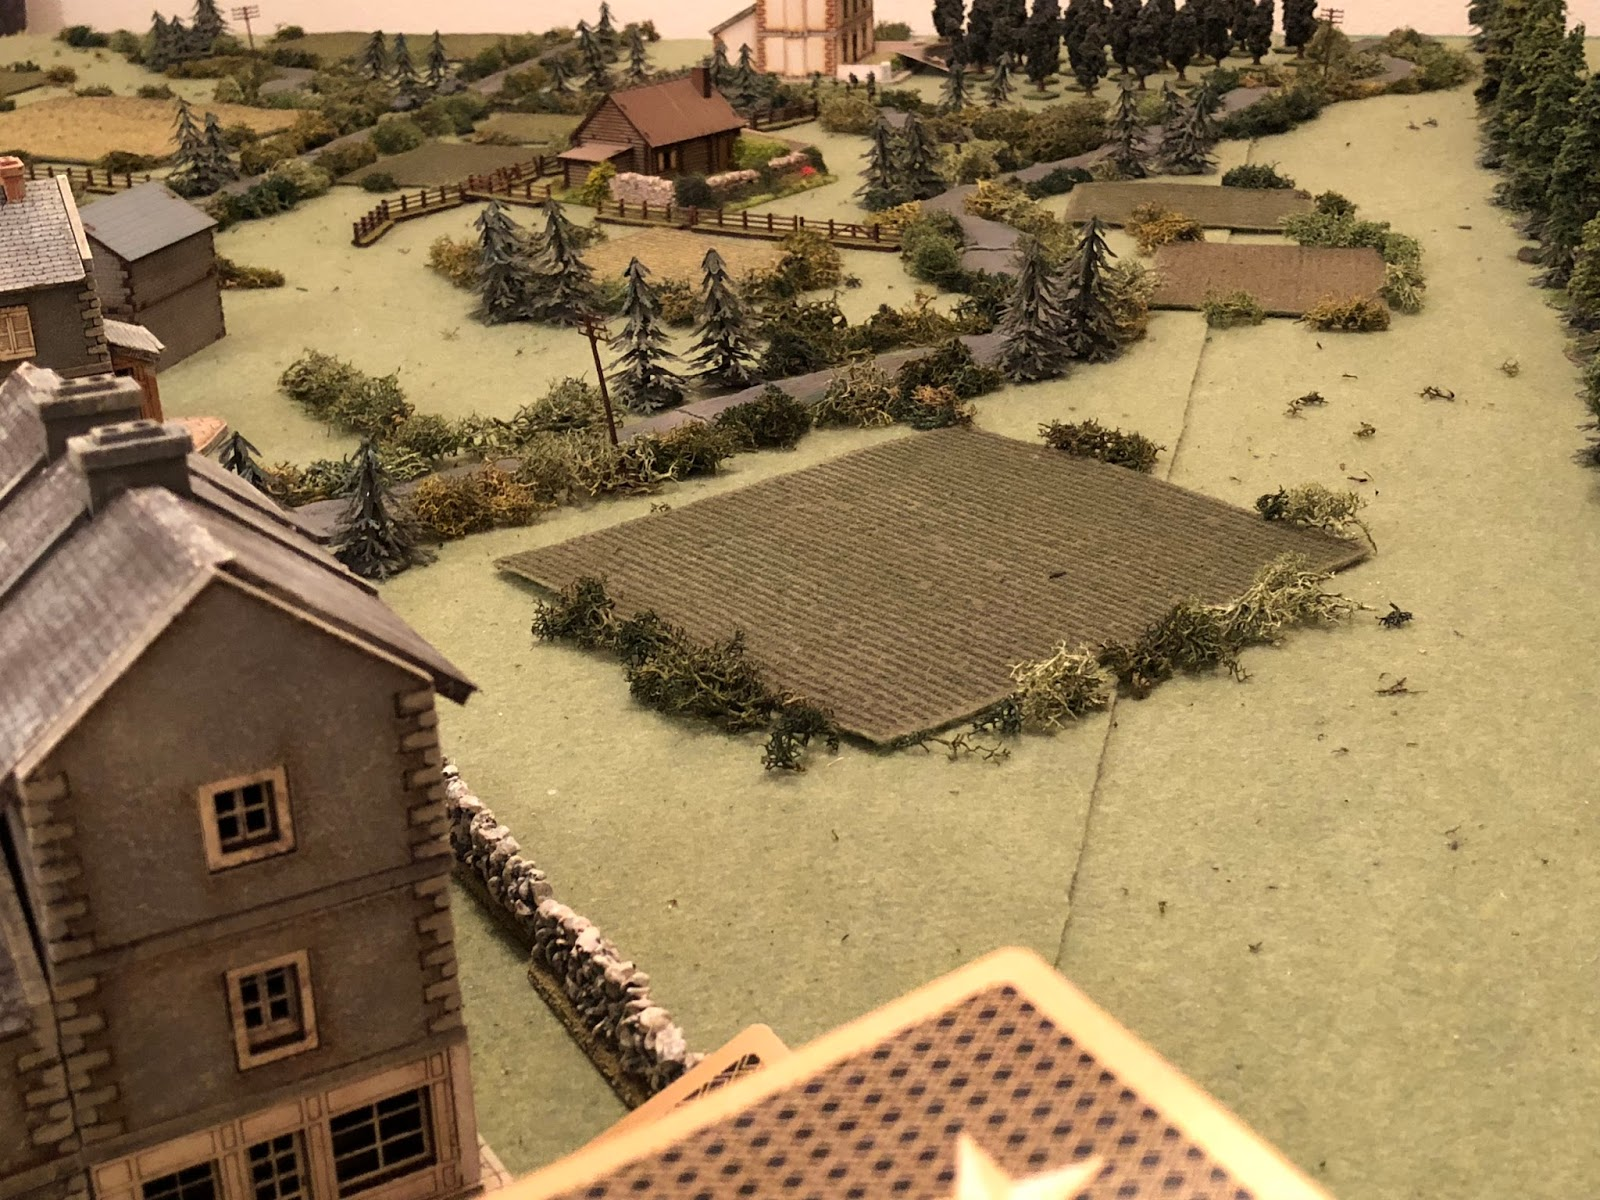 And then French Blinds in the ville (bottom centre) look towards the Farm (top centre, with the German 1st Platoon just to its right)...